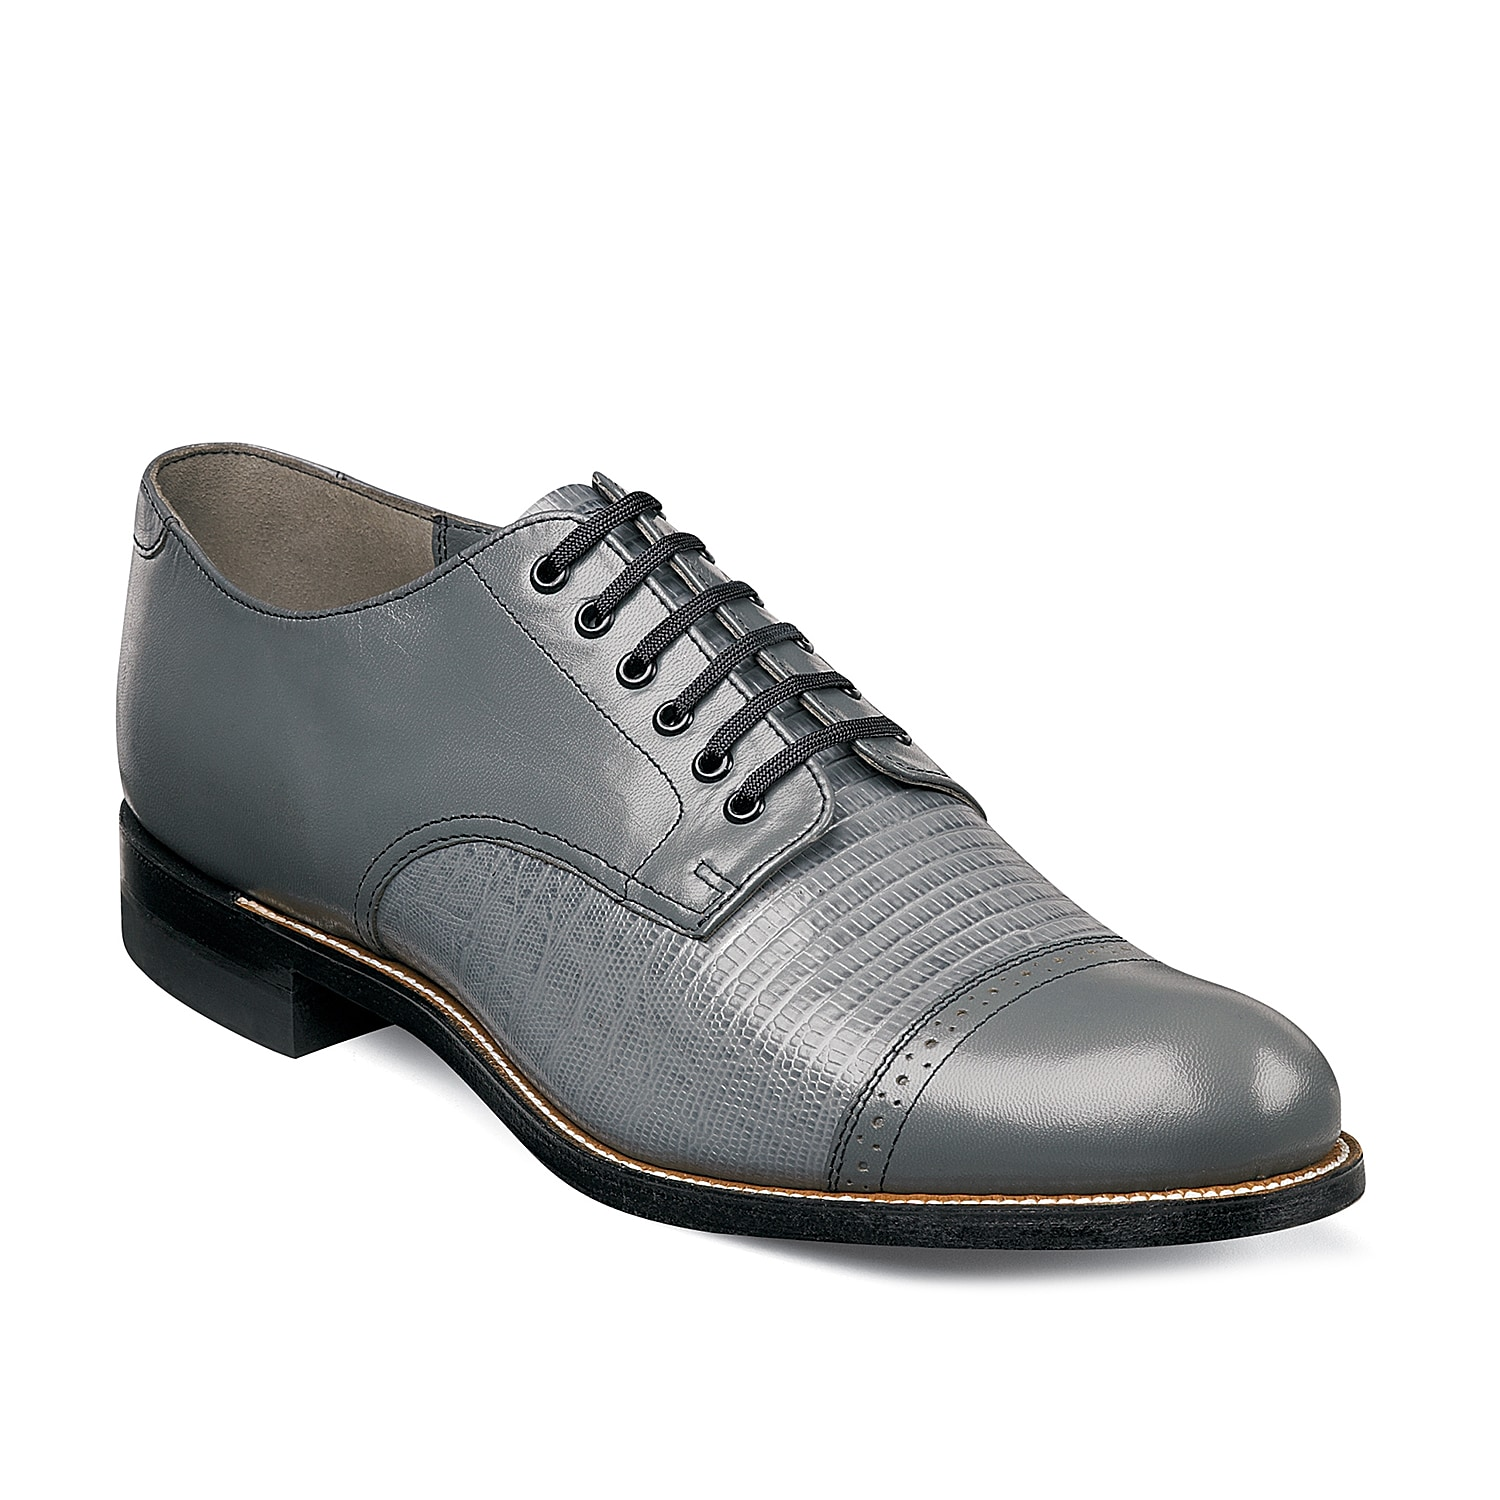 Dress to impress in the Stacy Adams Madison oxford. With a stylish leather upper, cap toe, and fun color options you\\\'ll be sure to turn heads!